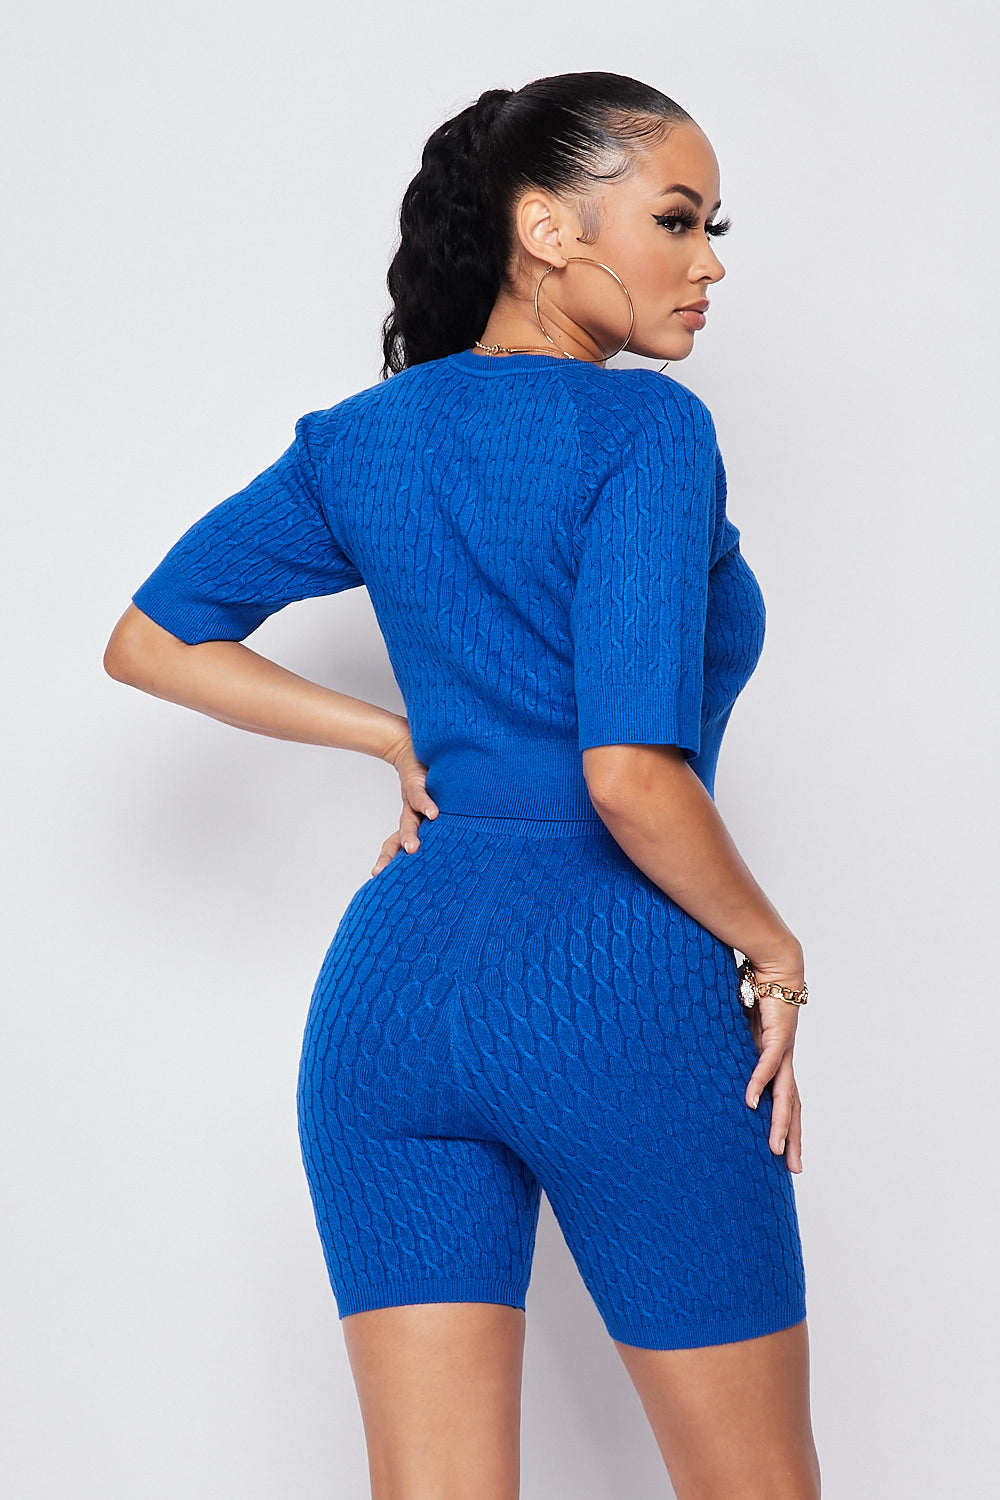 Sexy Knit Crop top w/ High Waist Biker Shorts-ROYAL BLUE - Fashion House USA